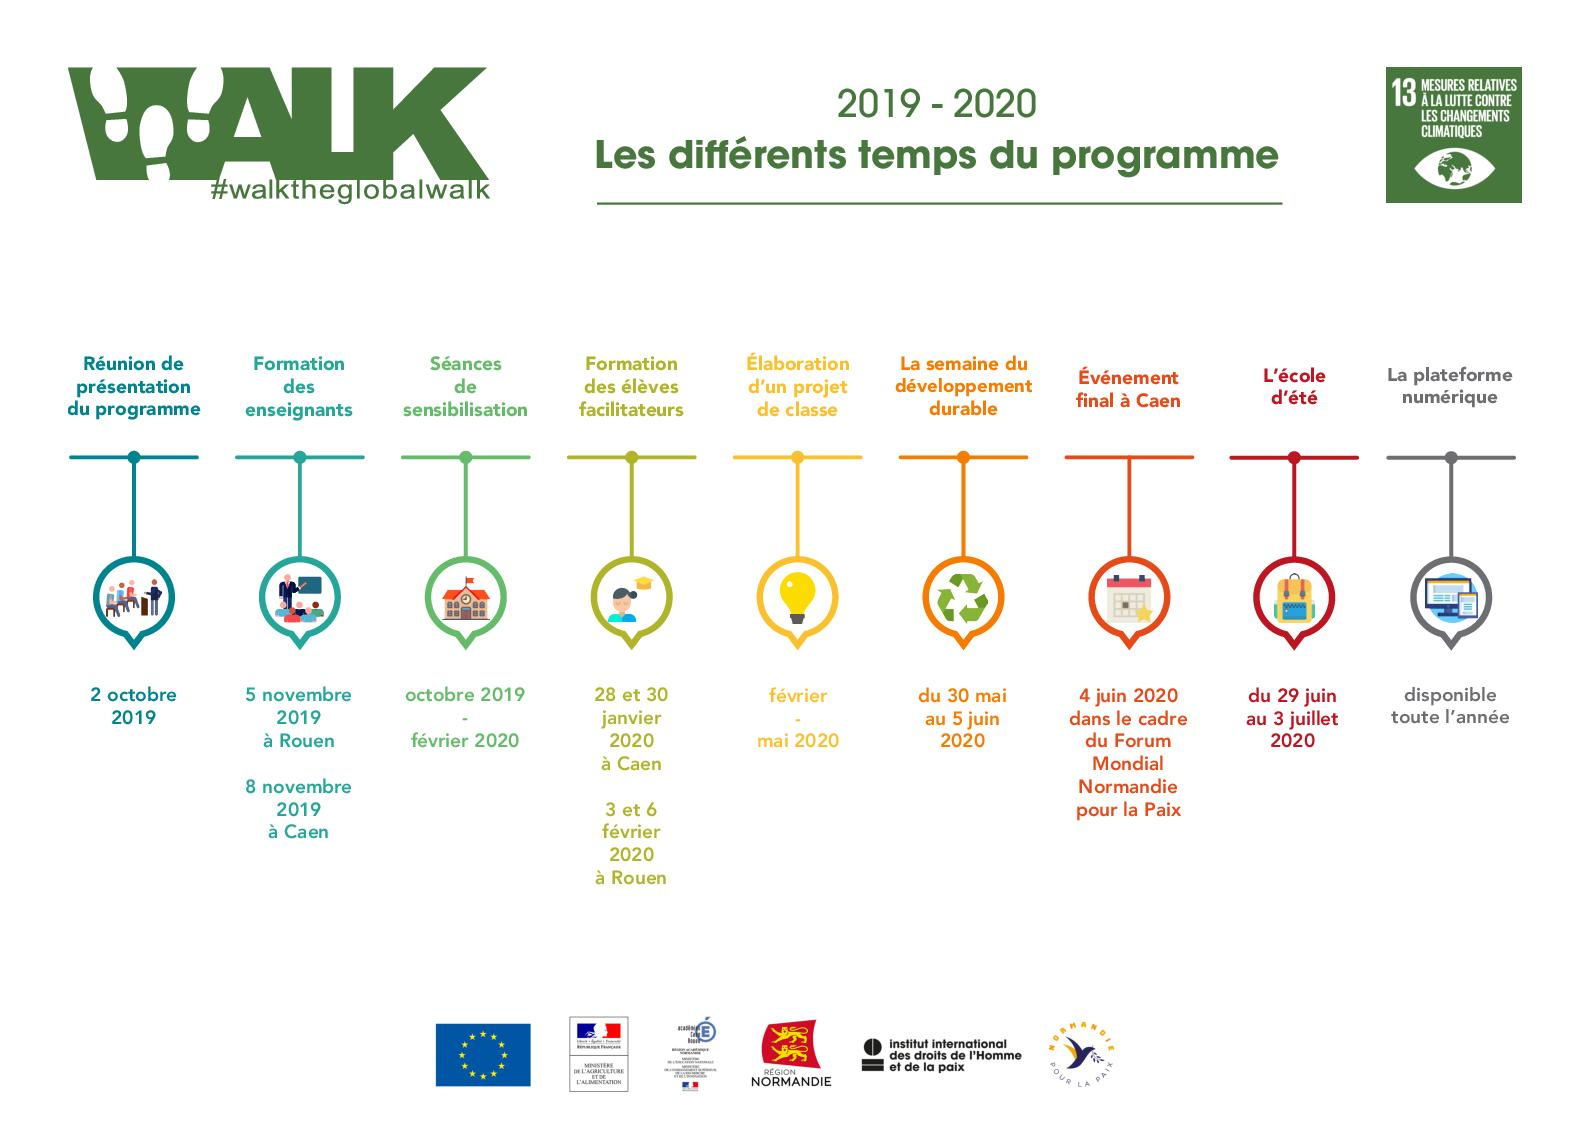 Calendrier Mondial 2020.Calameo Walk The Global Walk Calendrier Previsionnel